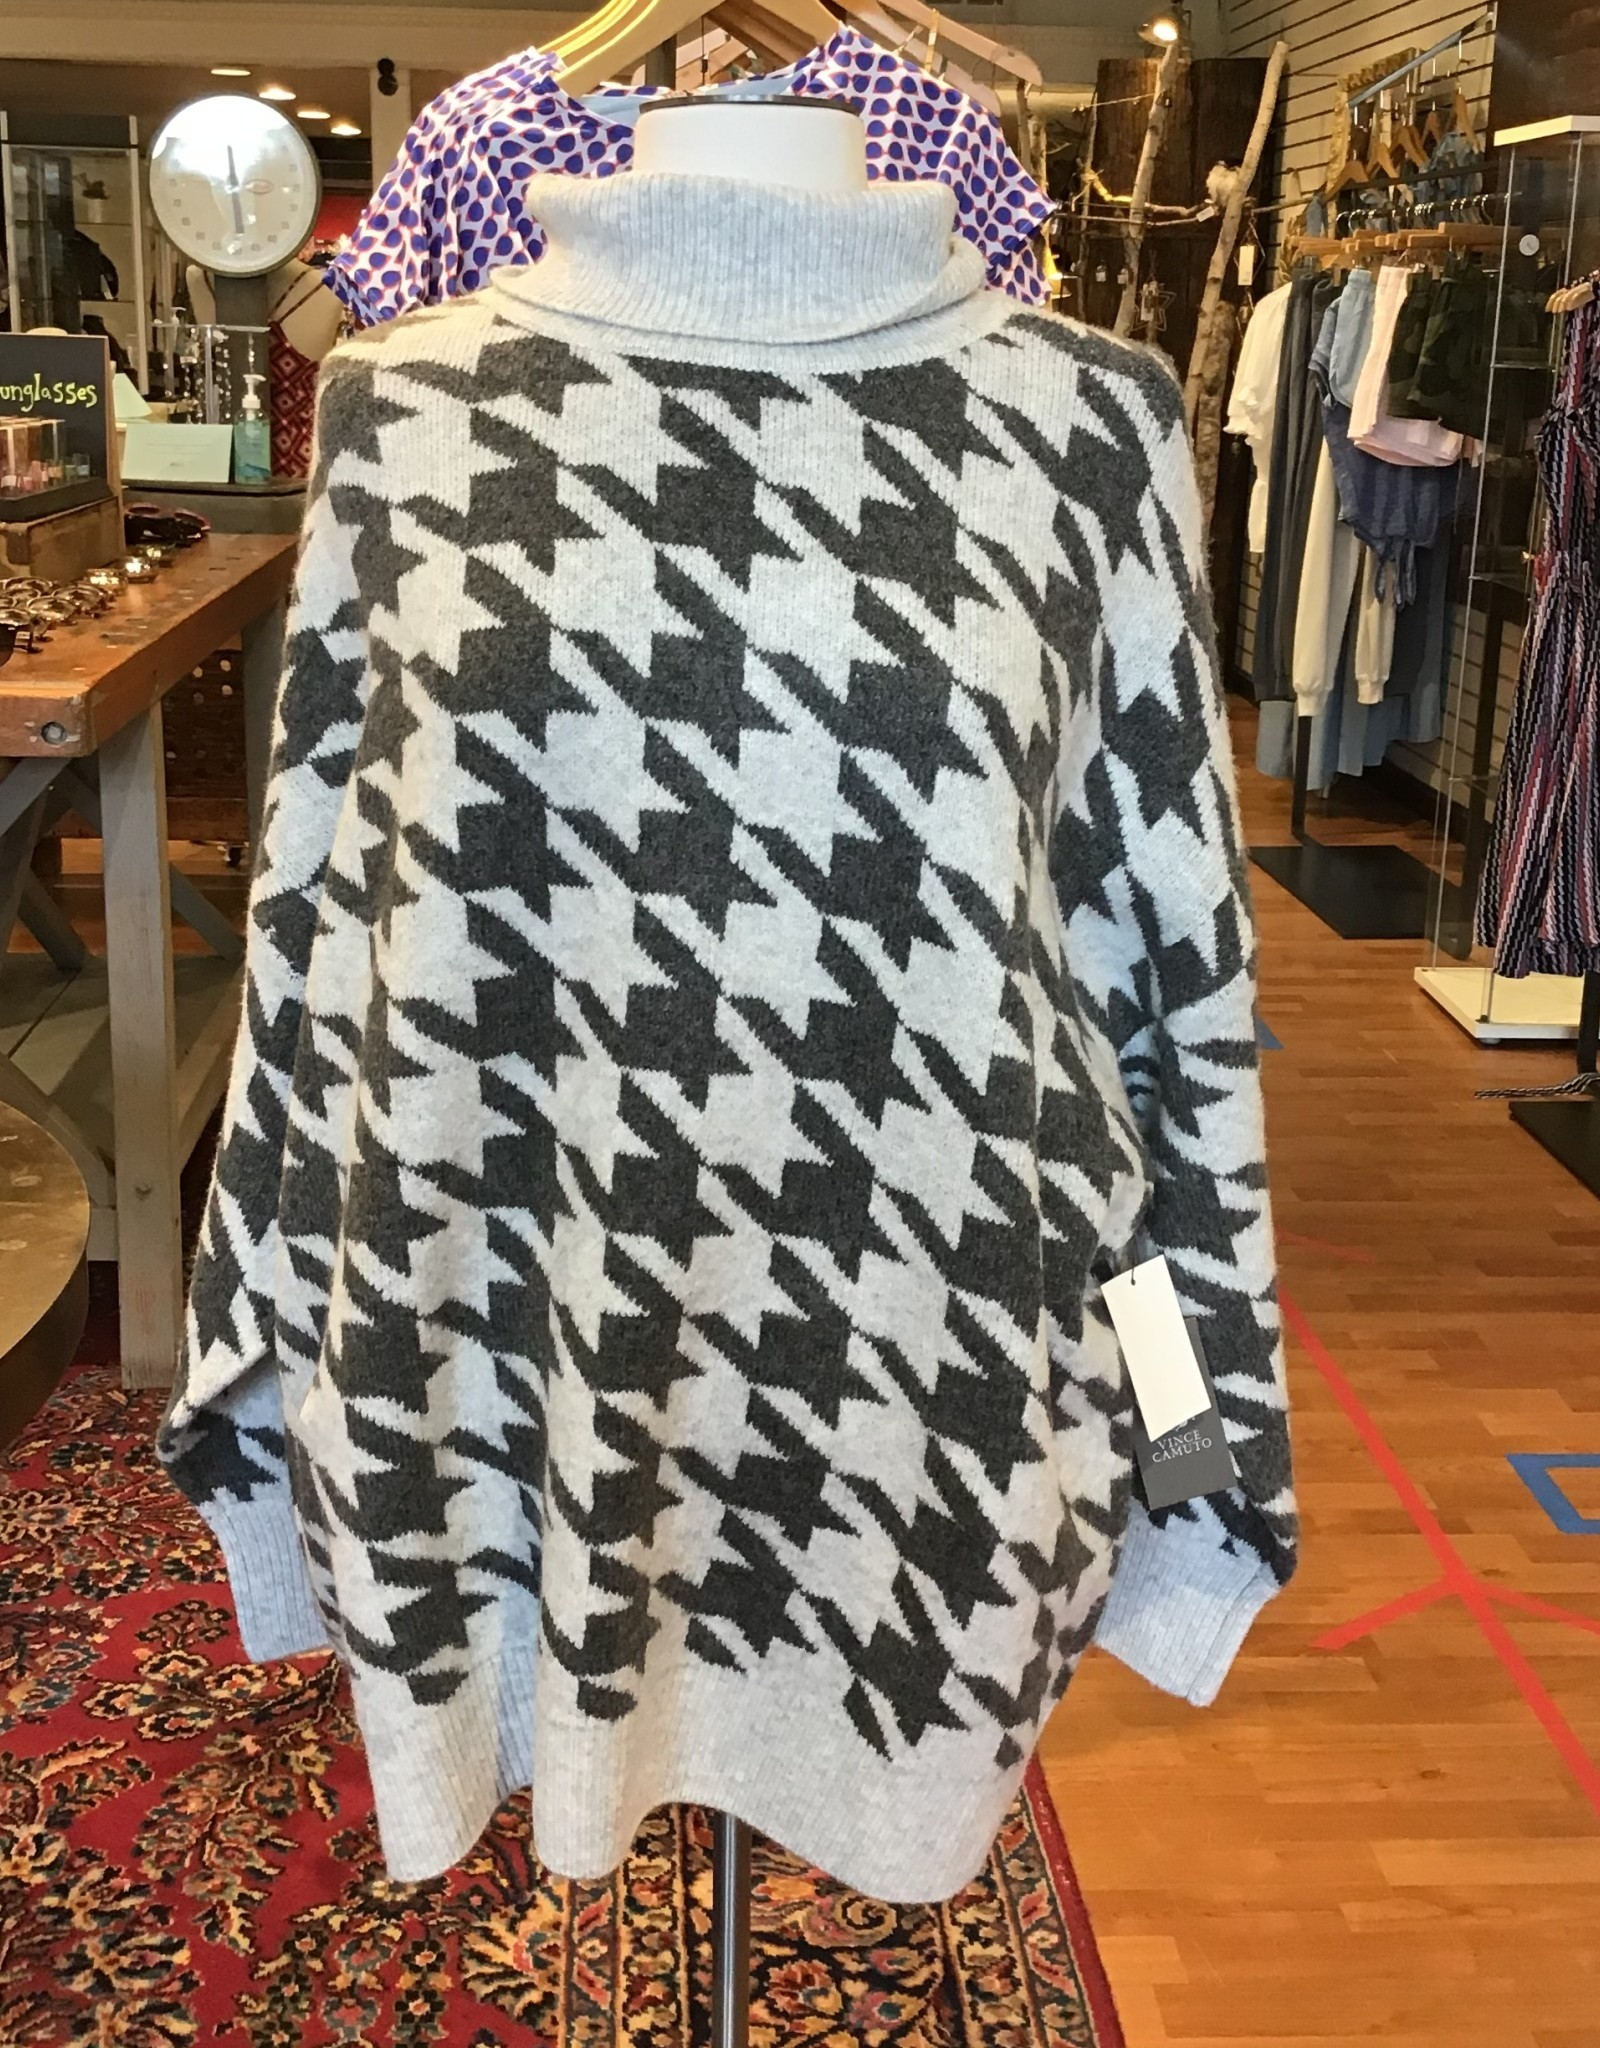 Vince Camuto Vince Camuto Cozy Houndstooth Print Turtleneck Sweater Sz 3X